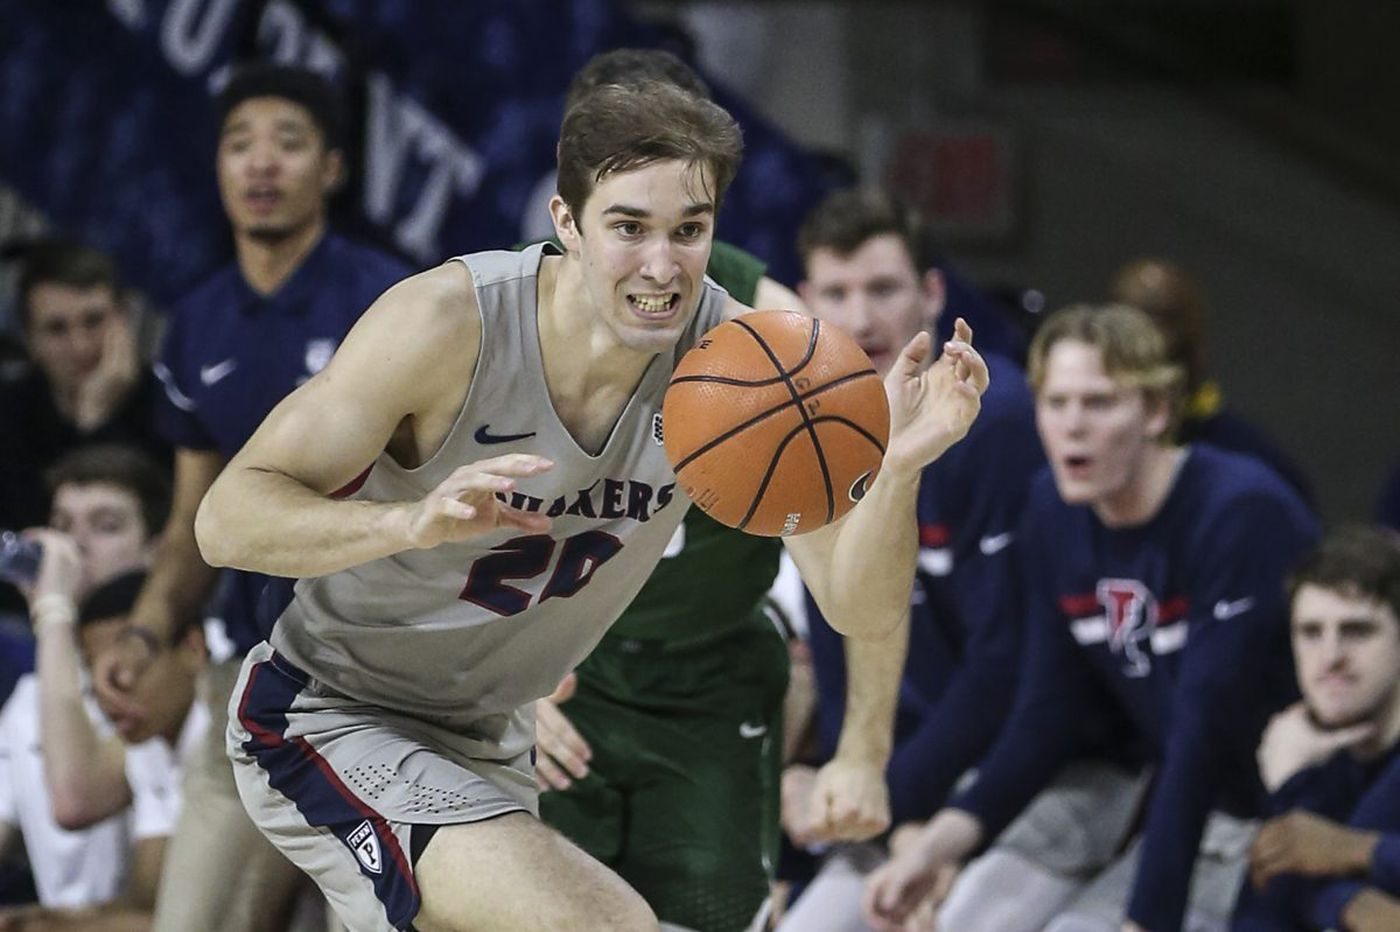 Penn routs cold-shooting Dartmouth to continue Ivy League reign